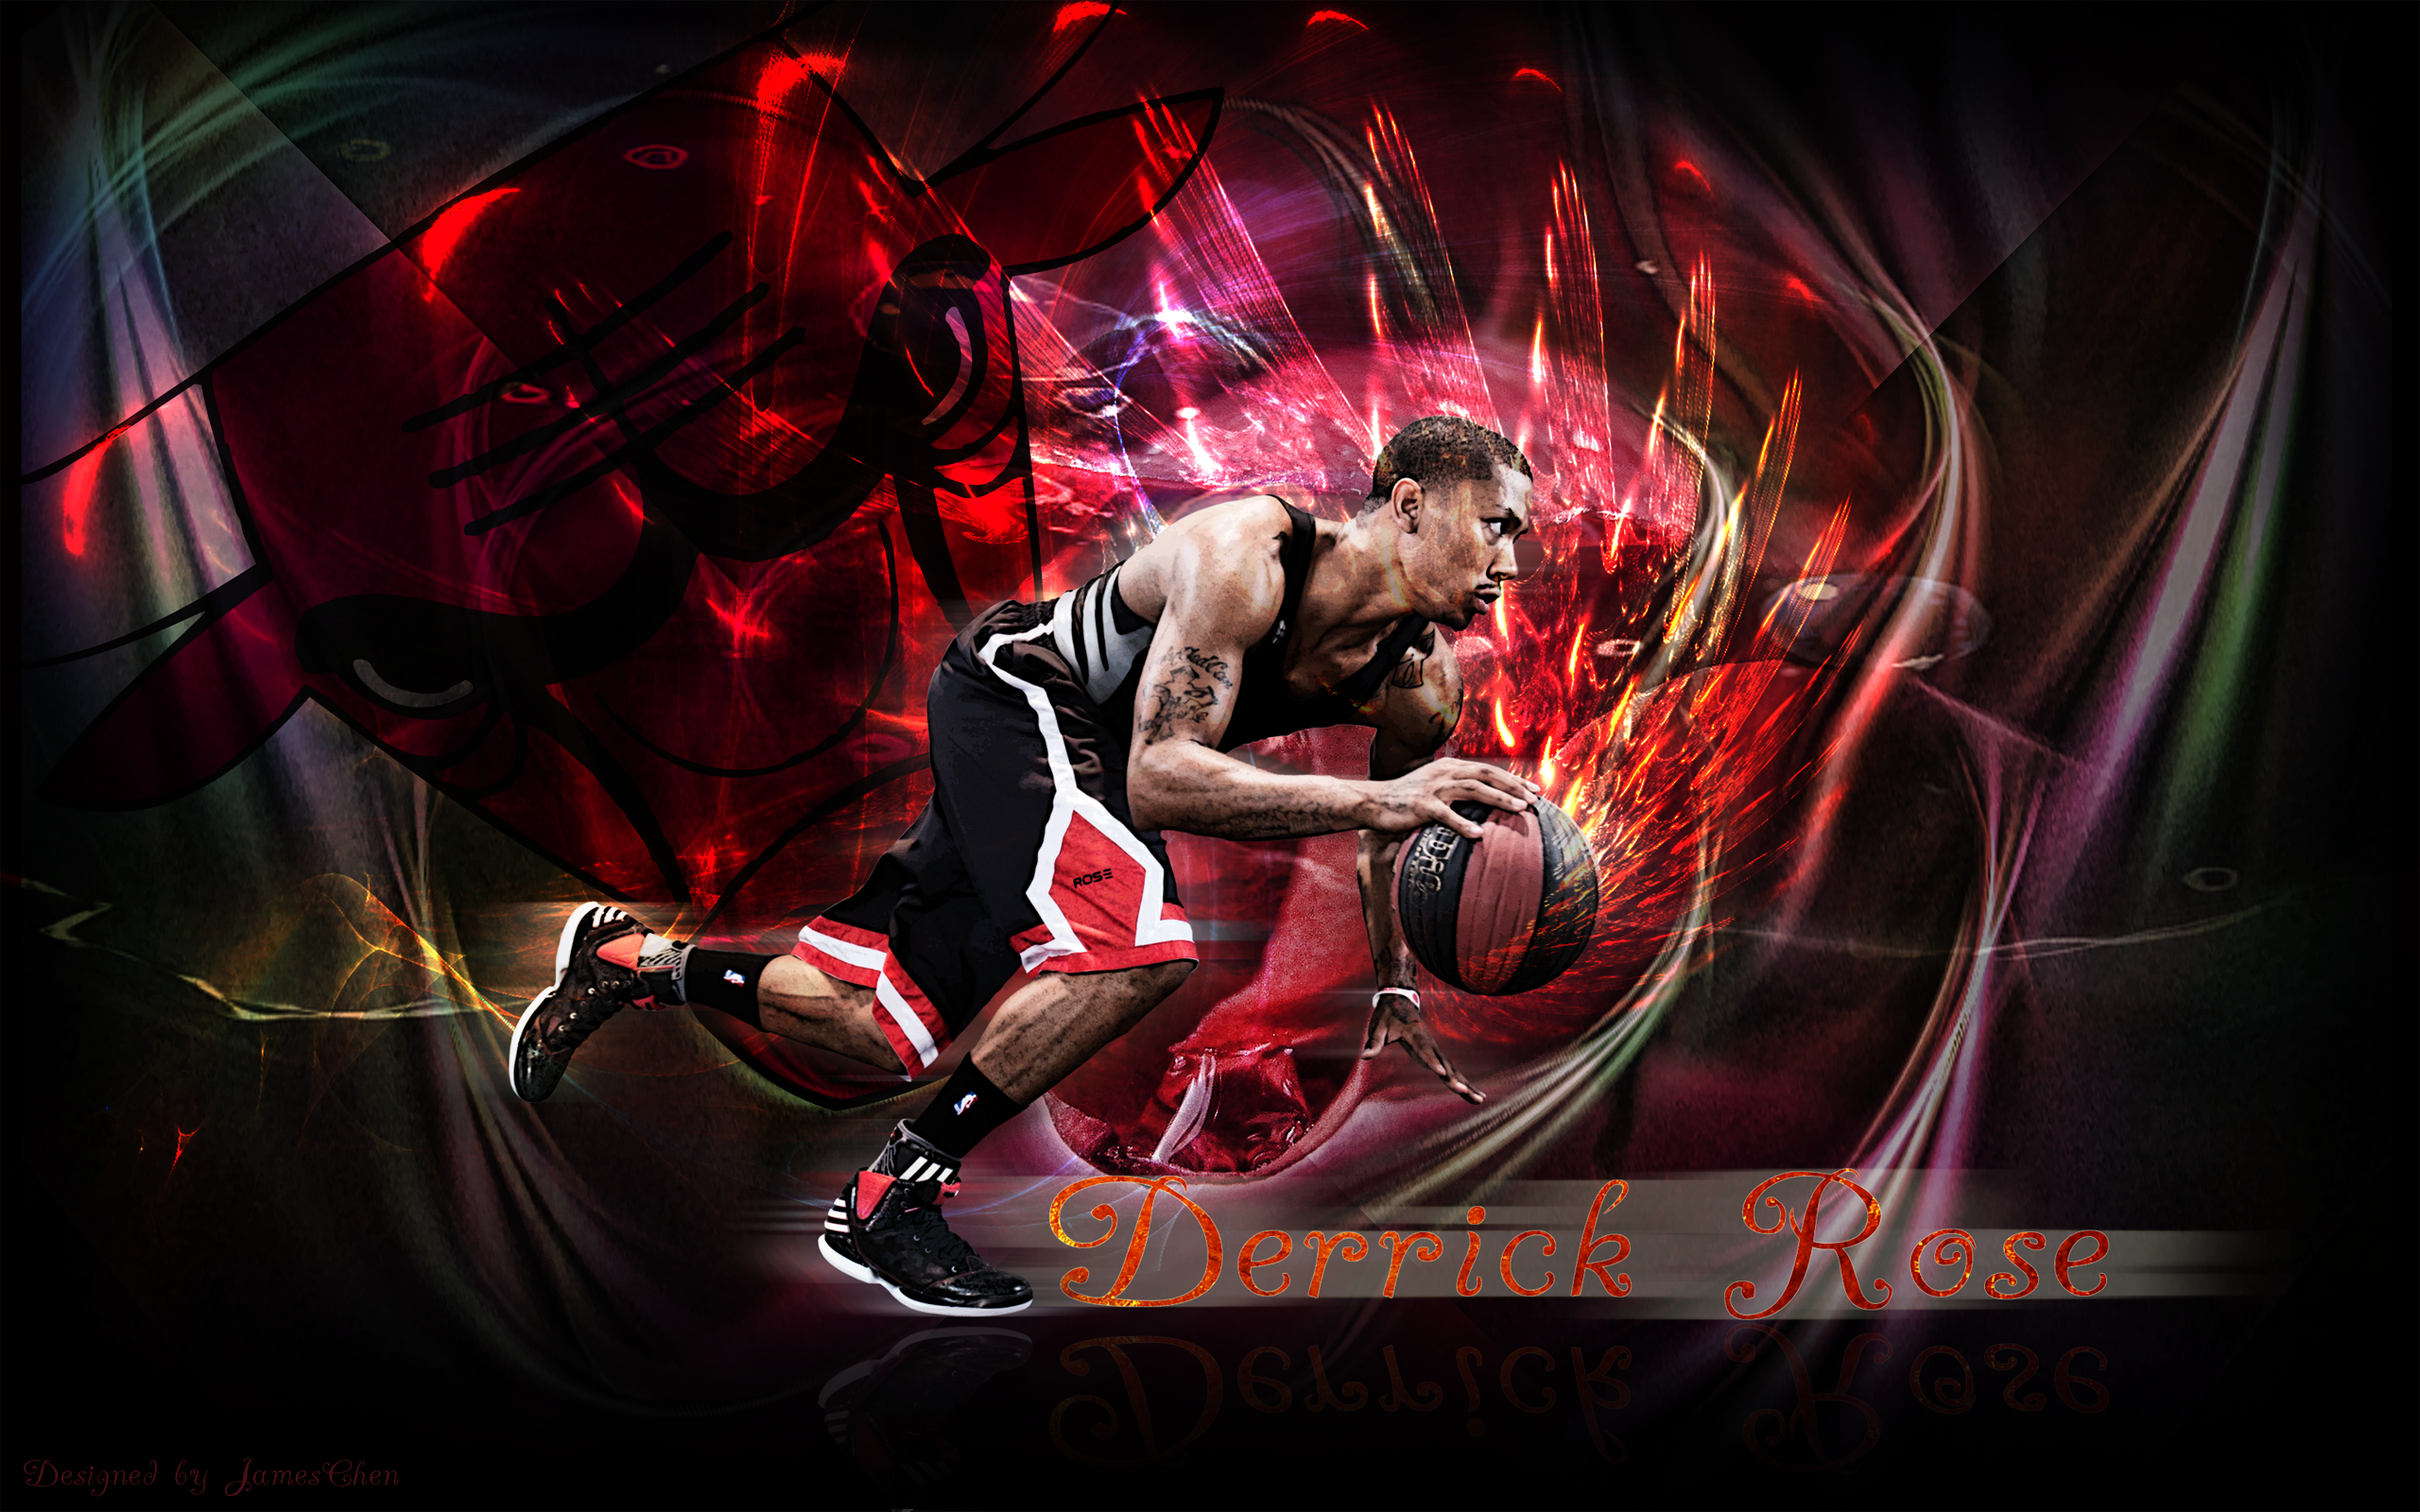 derrick rose wallpaper chicago bulls wallpaper sport photo derrick 2560x1600